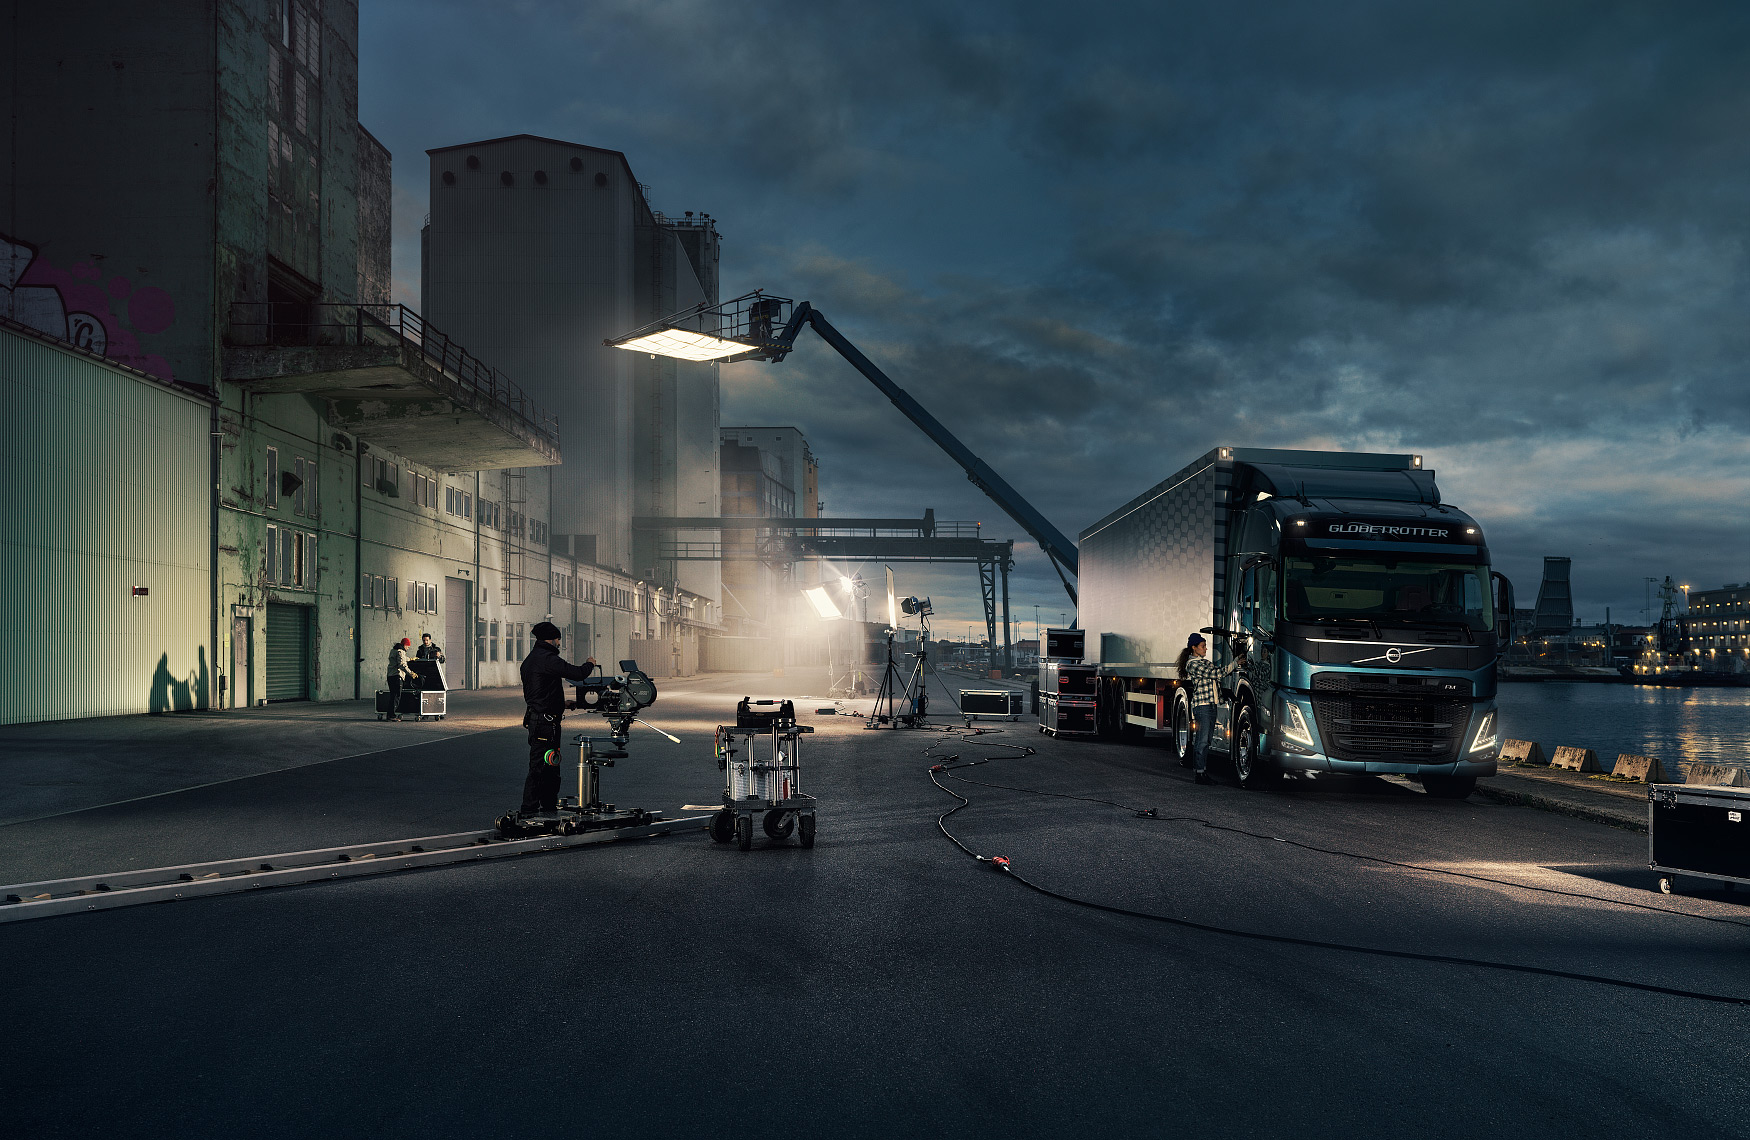 14_VolvoTrucks_FM_Movieset_041120_FINAL_Master